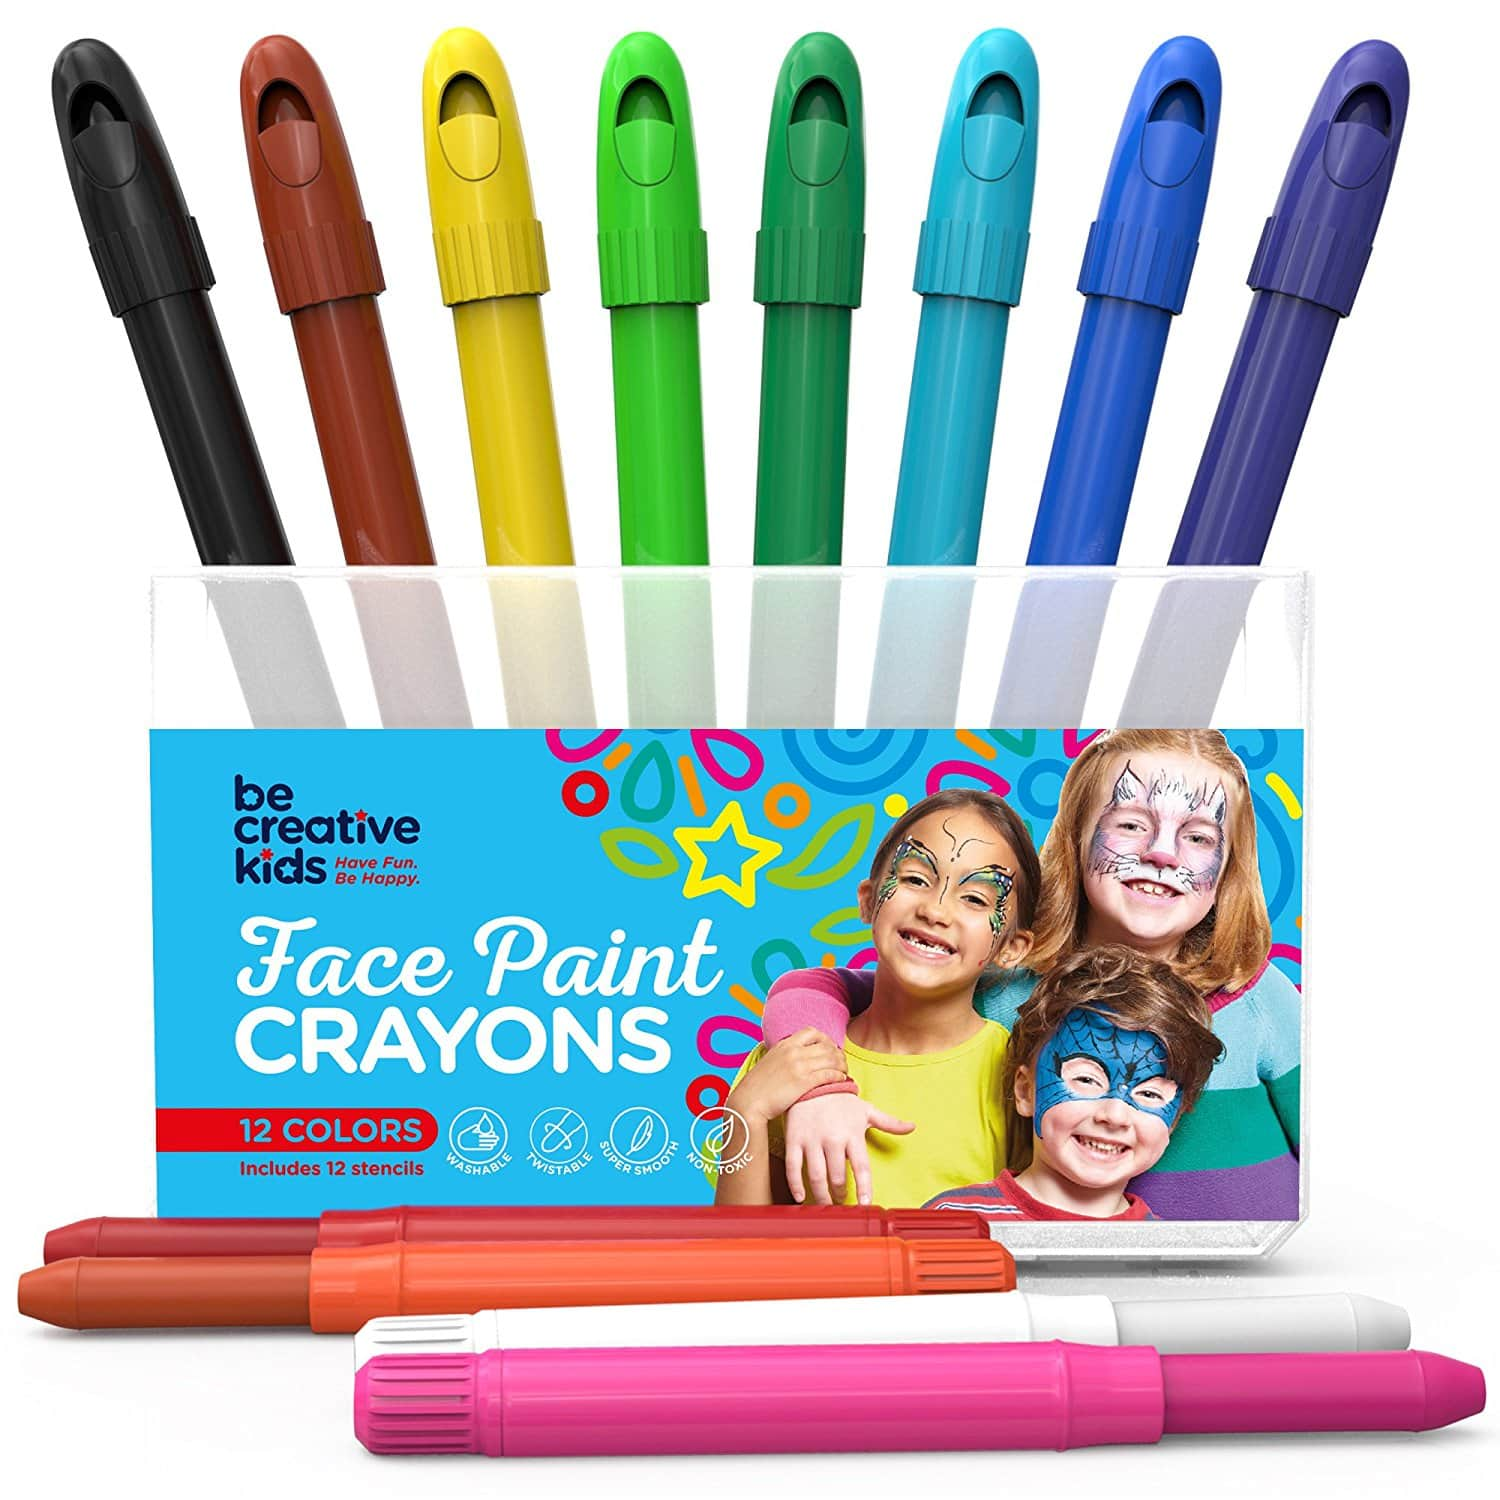 Face Paint Kit for Kids with 12 Non-Toxic Color Sticks $5.10 + Free Shipping at Amazon